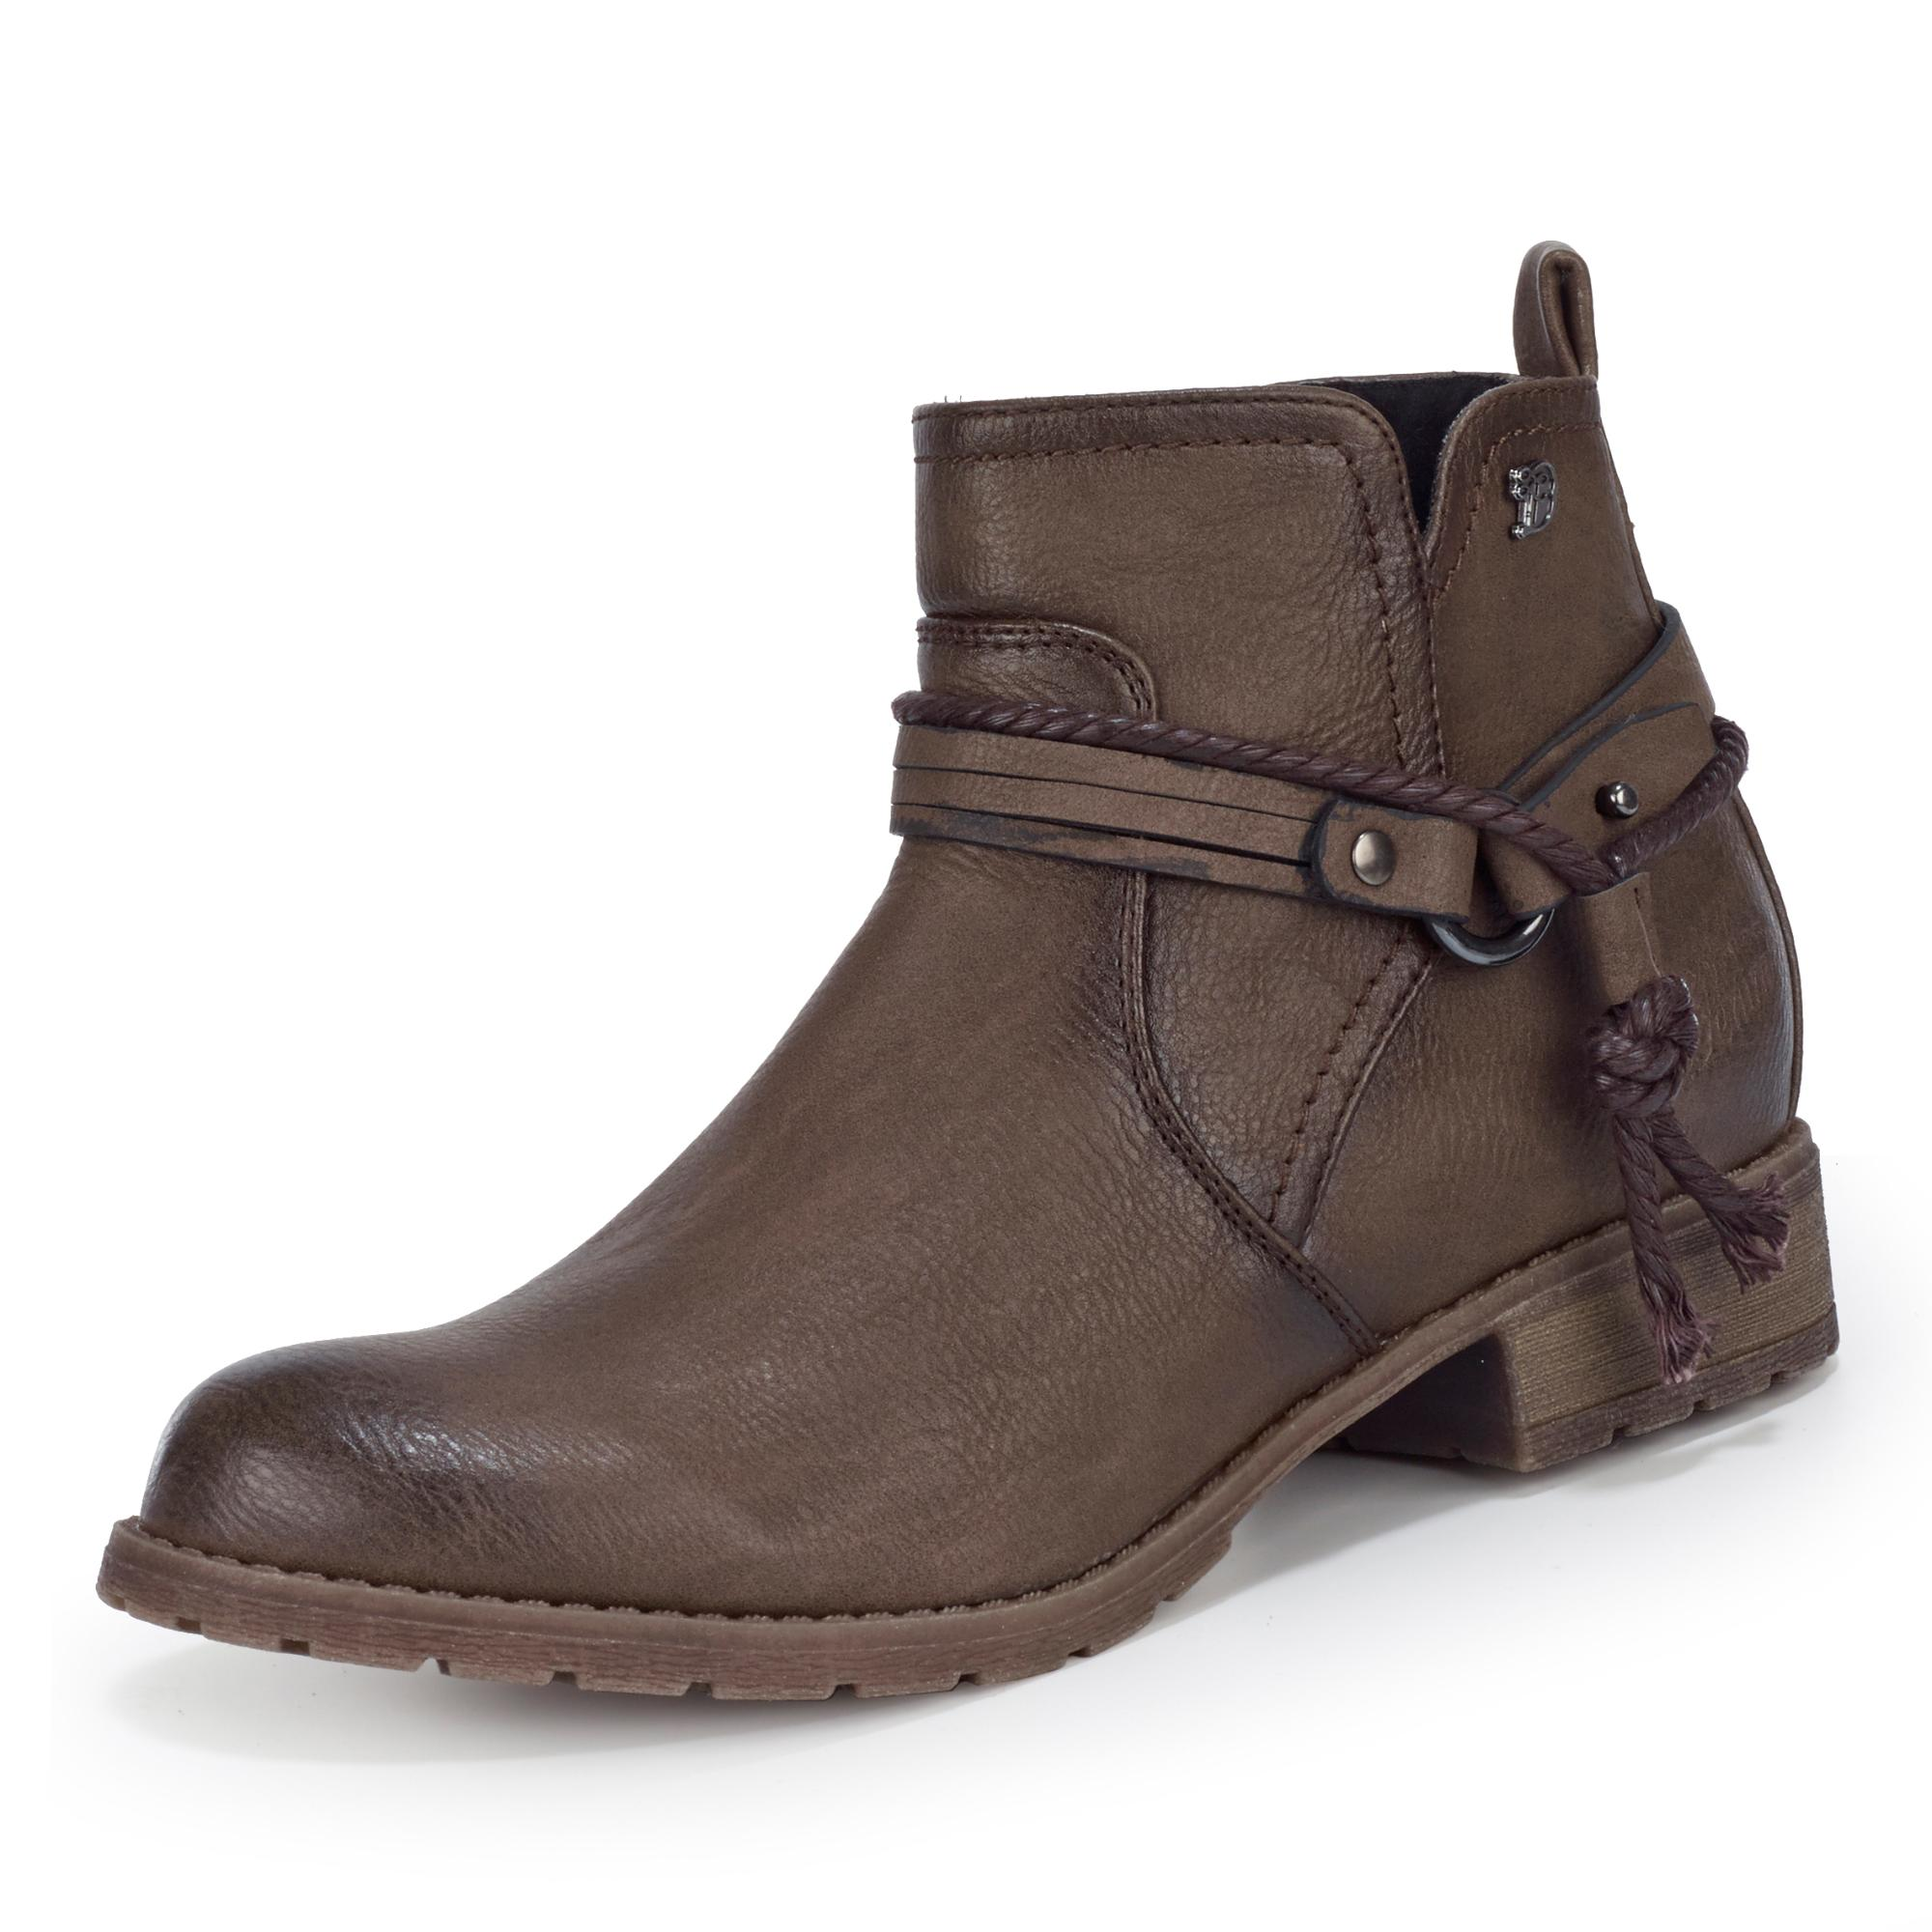 Tom Tailor Stiefelette - taupe | Markenschuhe